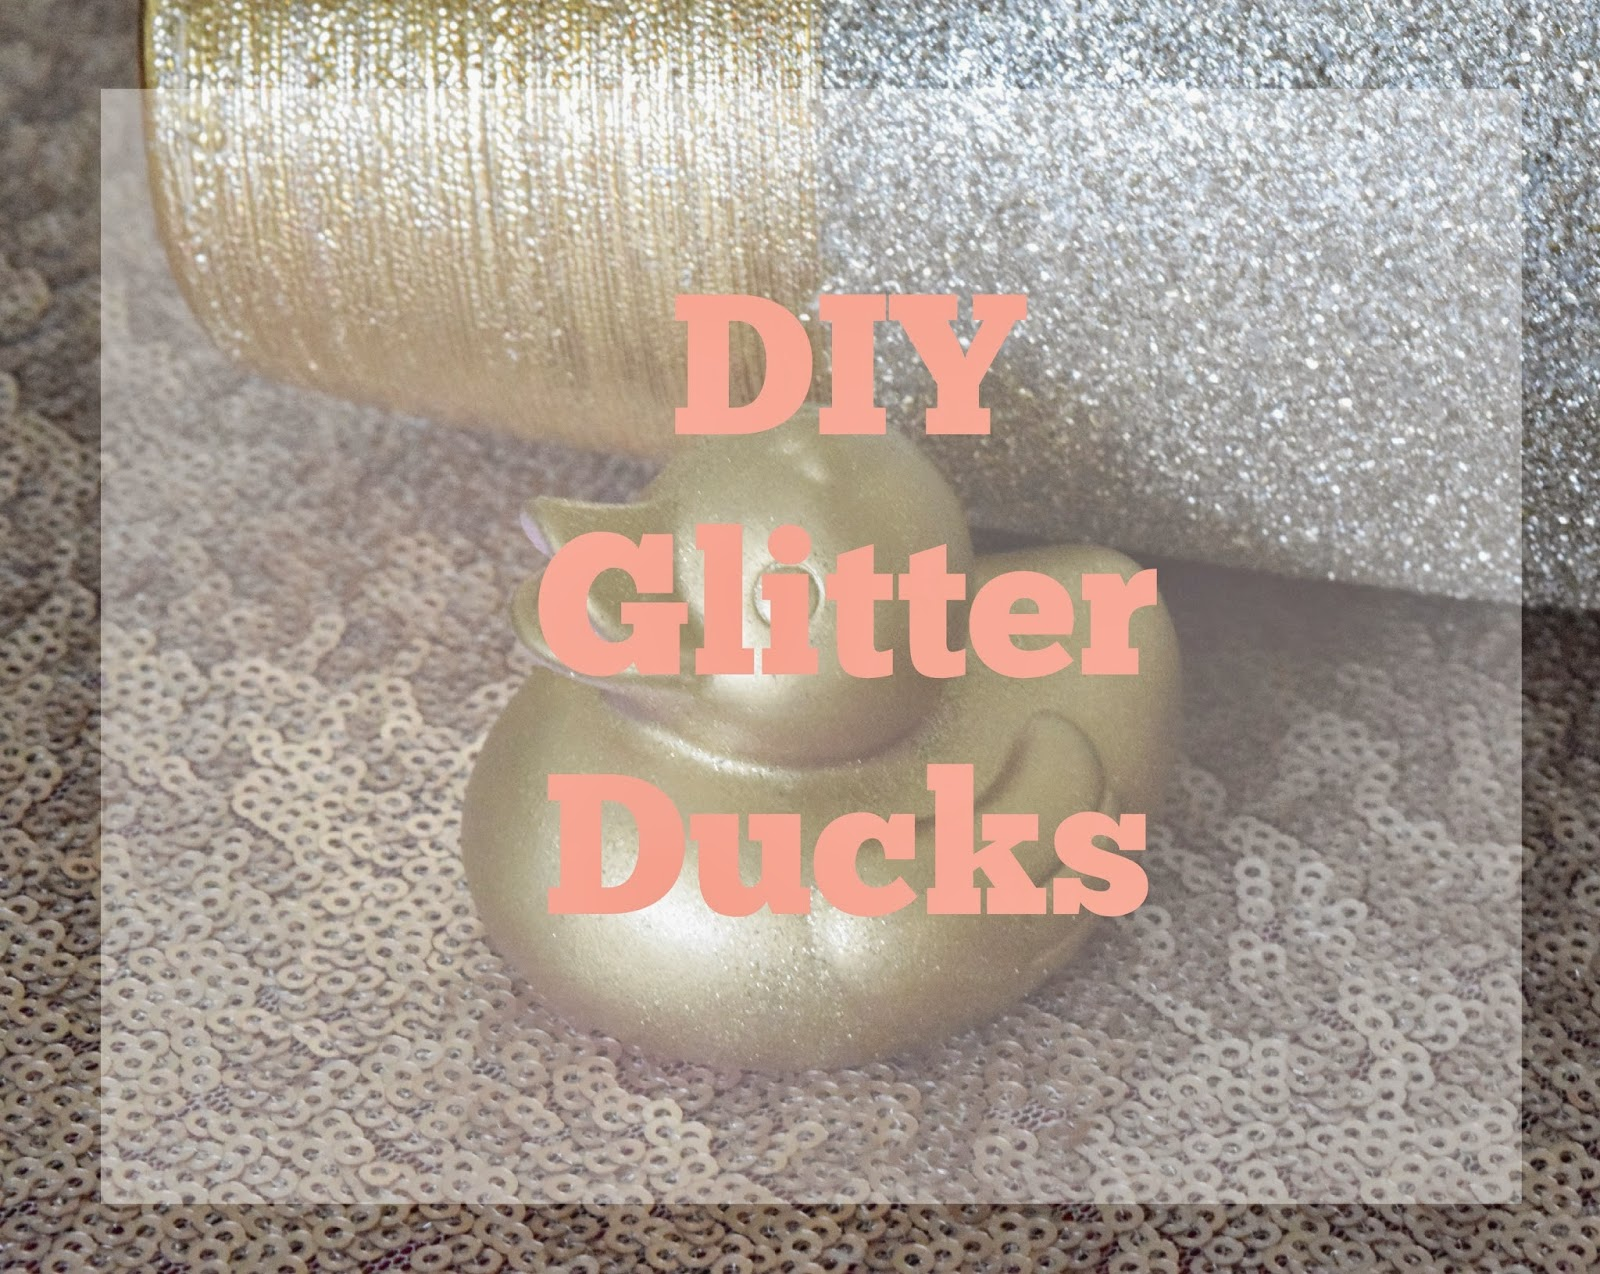 DIY Sparkly Rubber Ducks